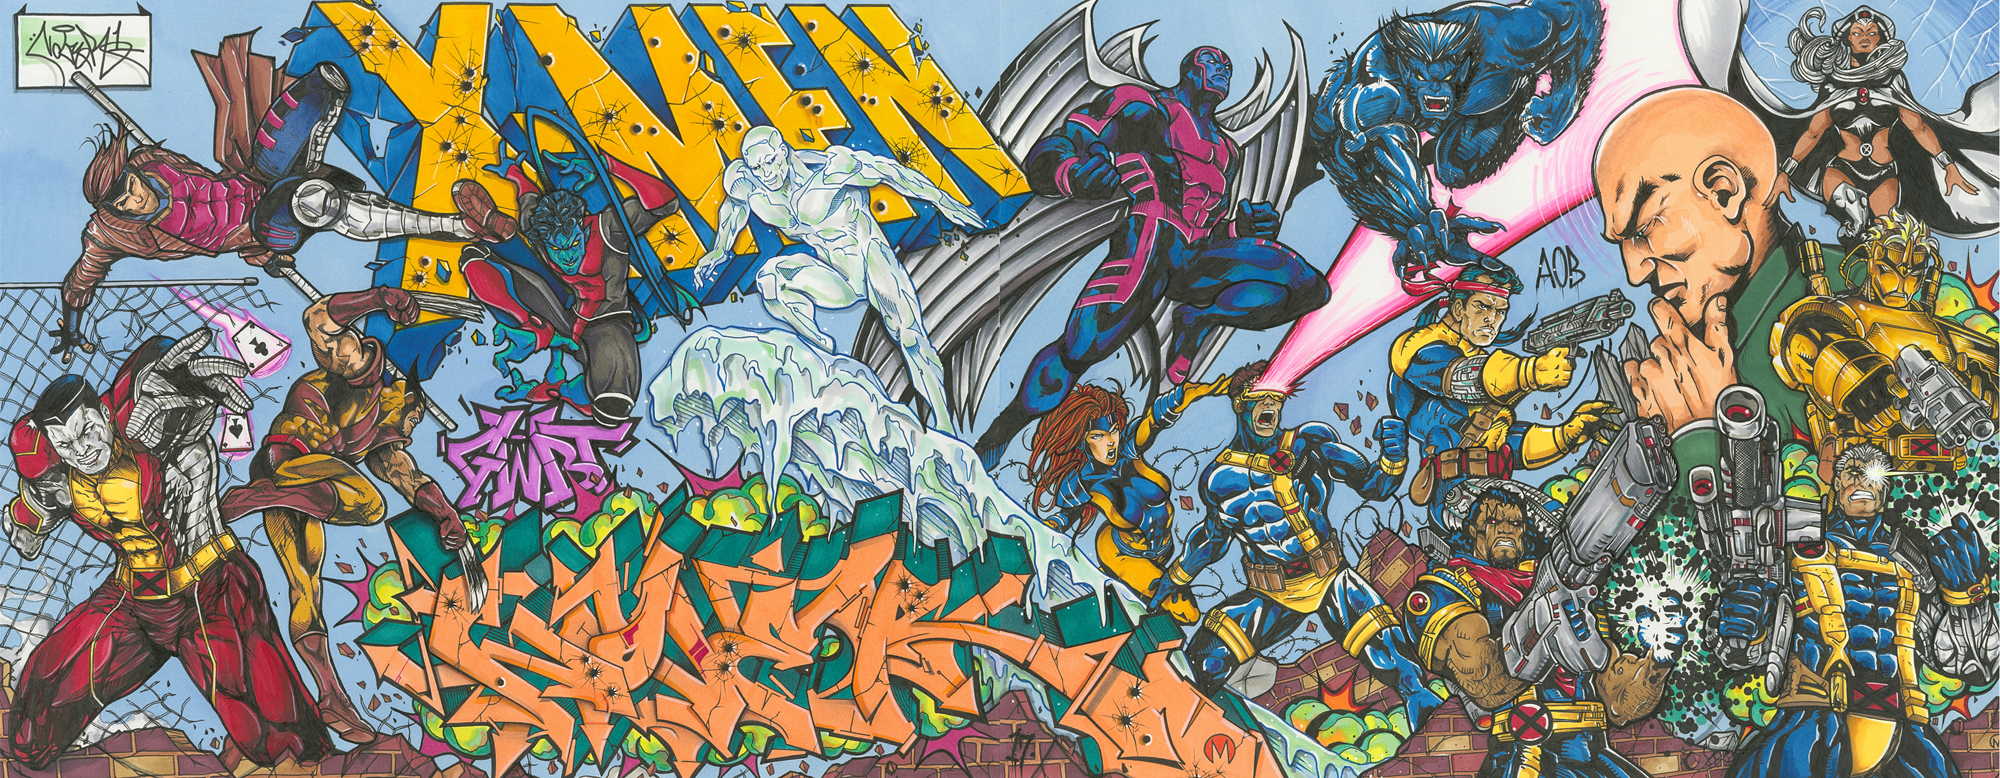 X-Men Heroes by Nover, Markers & Pen on Paper, 2018.